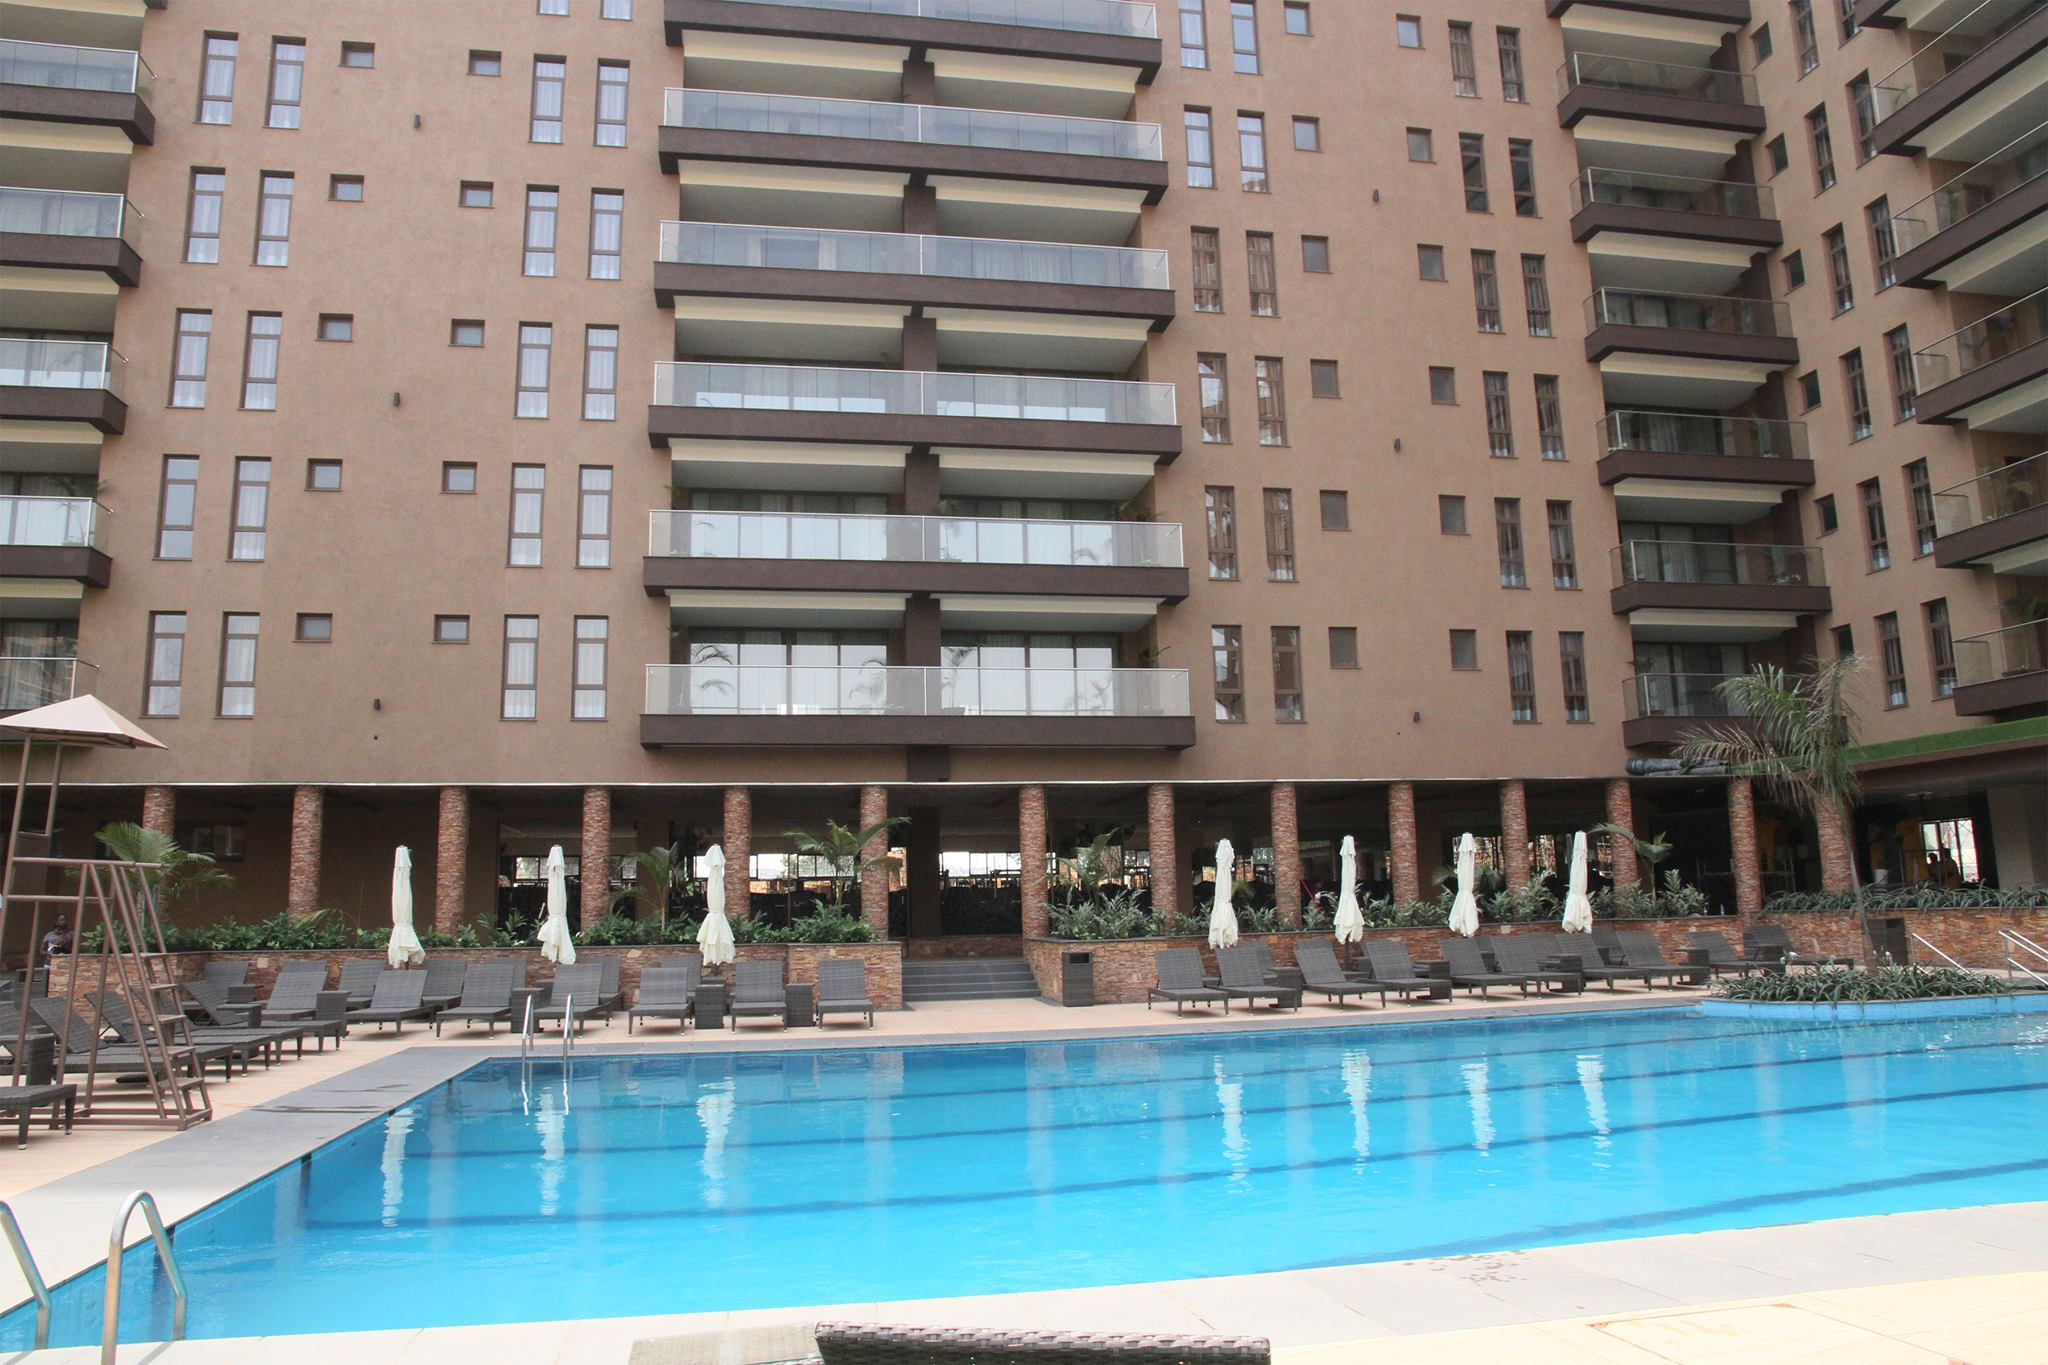 Located In The Heart Of Kampala Speke Apartments Are Latest Addition To Growing Hotel And Accommodation Facilities Uganda